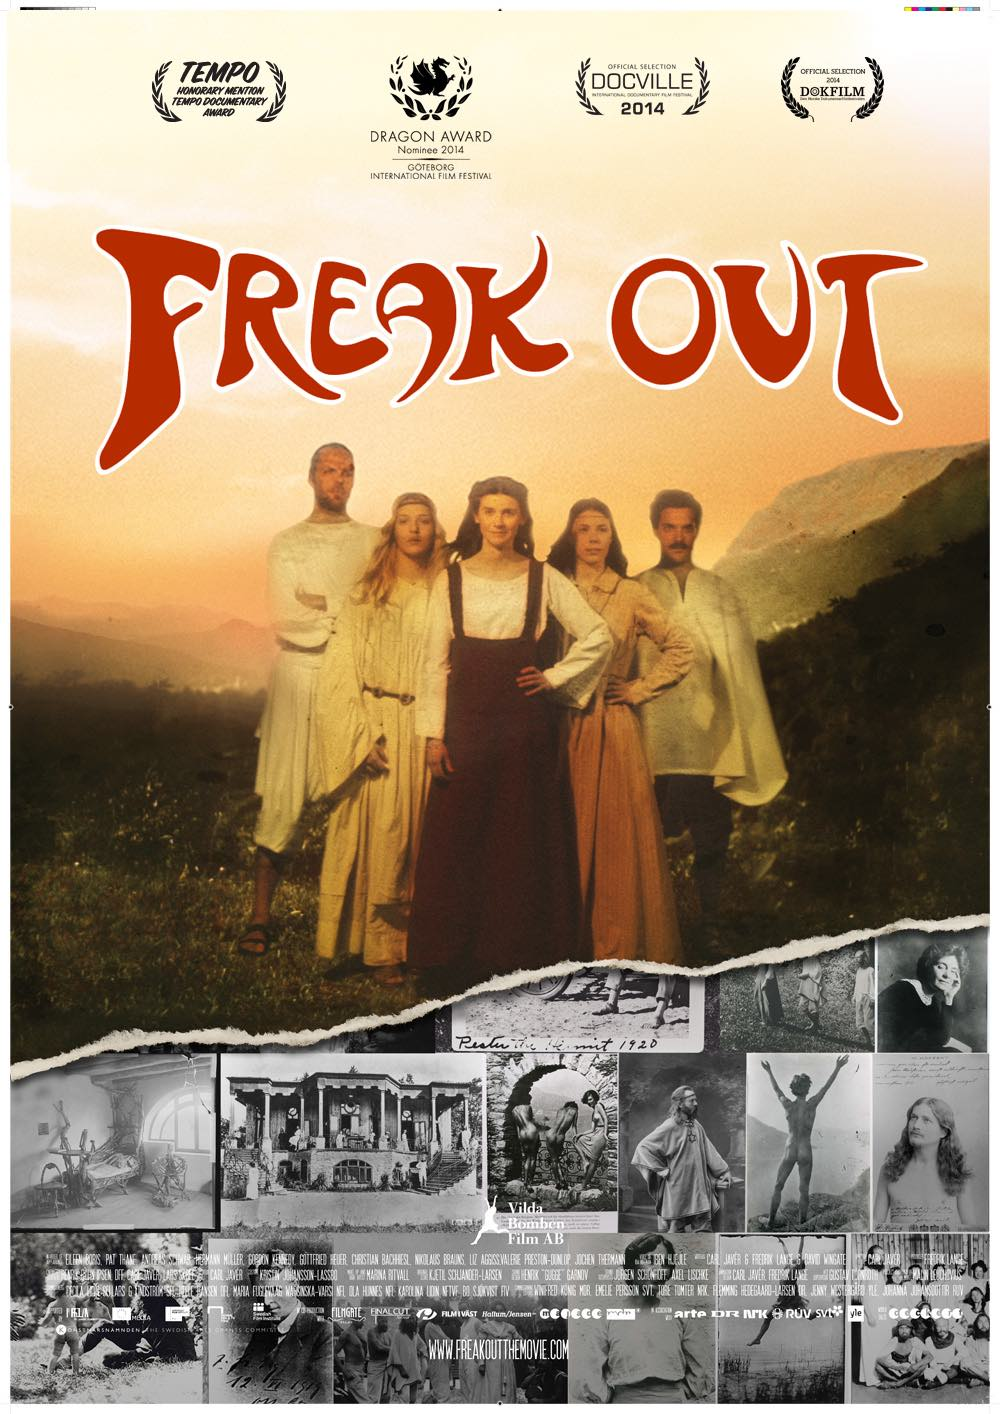 Copy of Freak Out